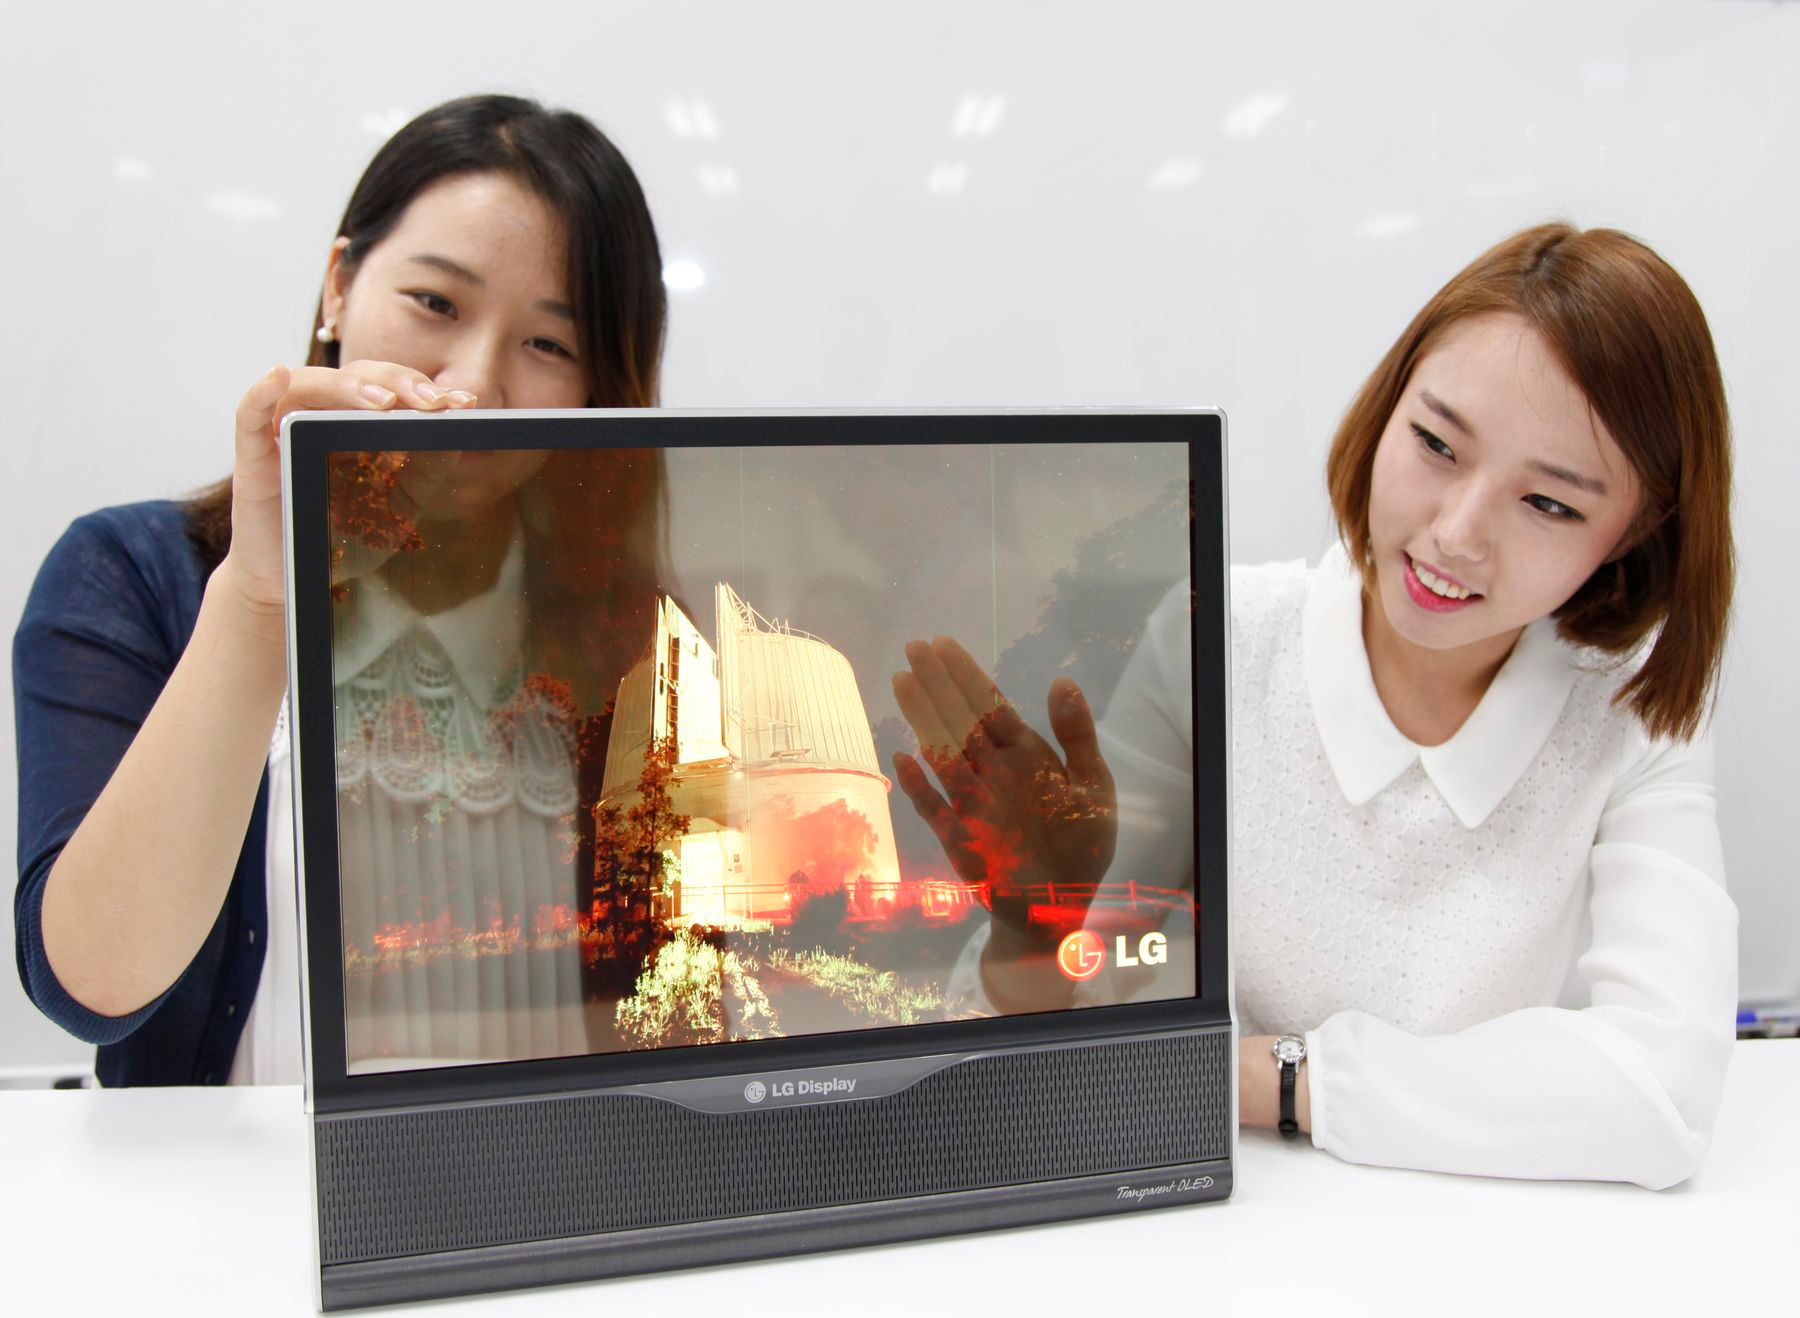 Transparent 18 inch OLED panel developed by LG Display in 2014.